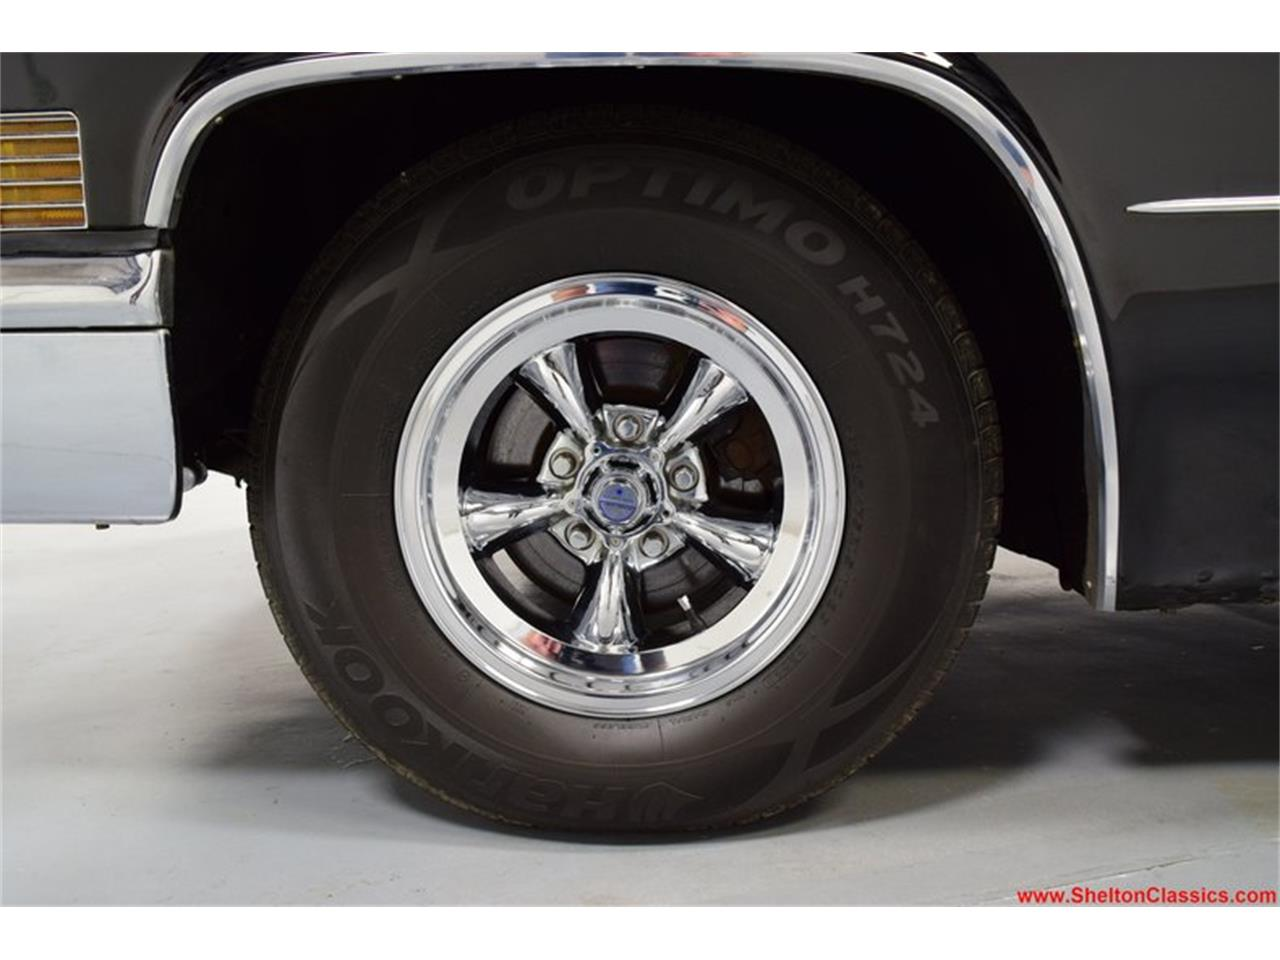 Large Picture of Classic 1970 Cadillac Fleetwood located in North Carolina Offered by Shelton Classics & Performance - Q5XC